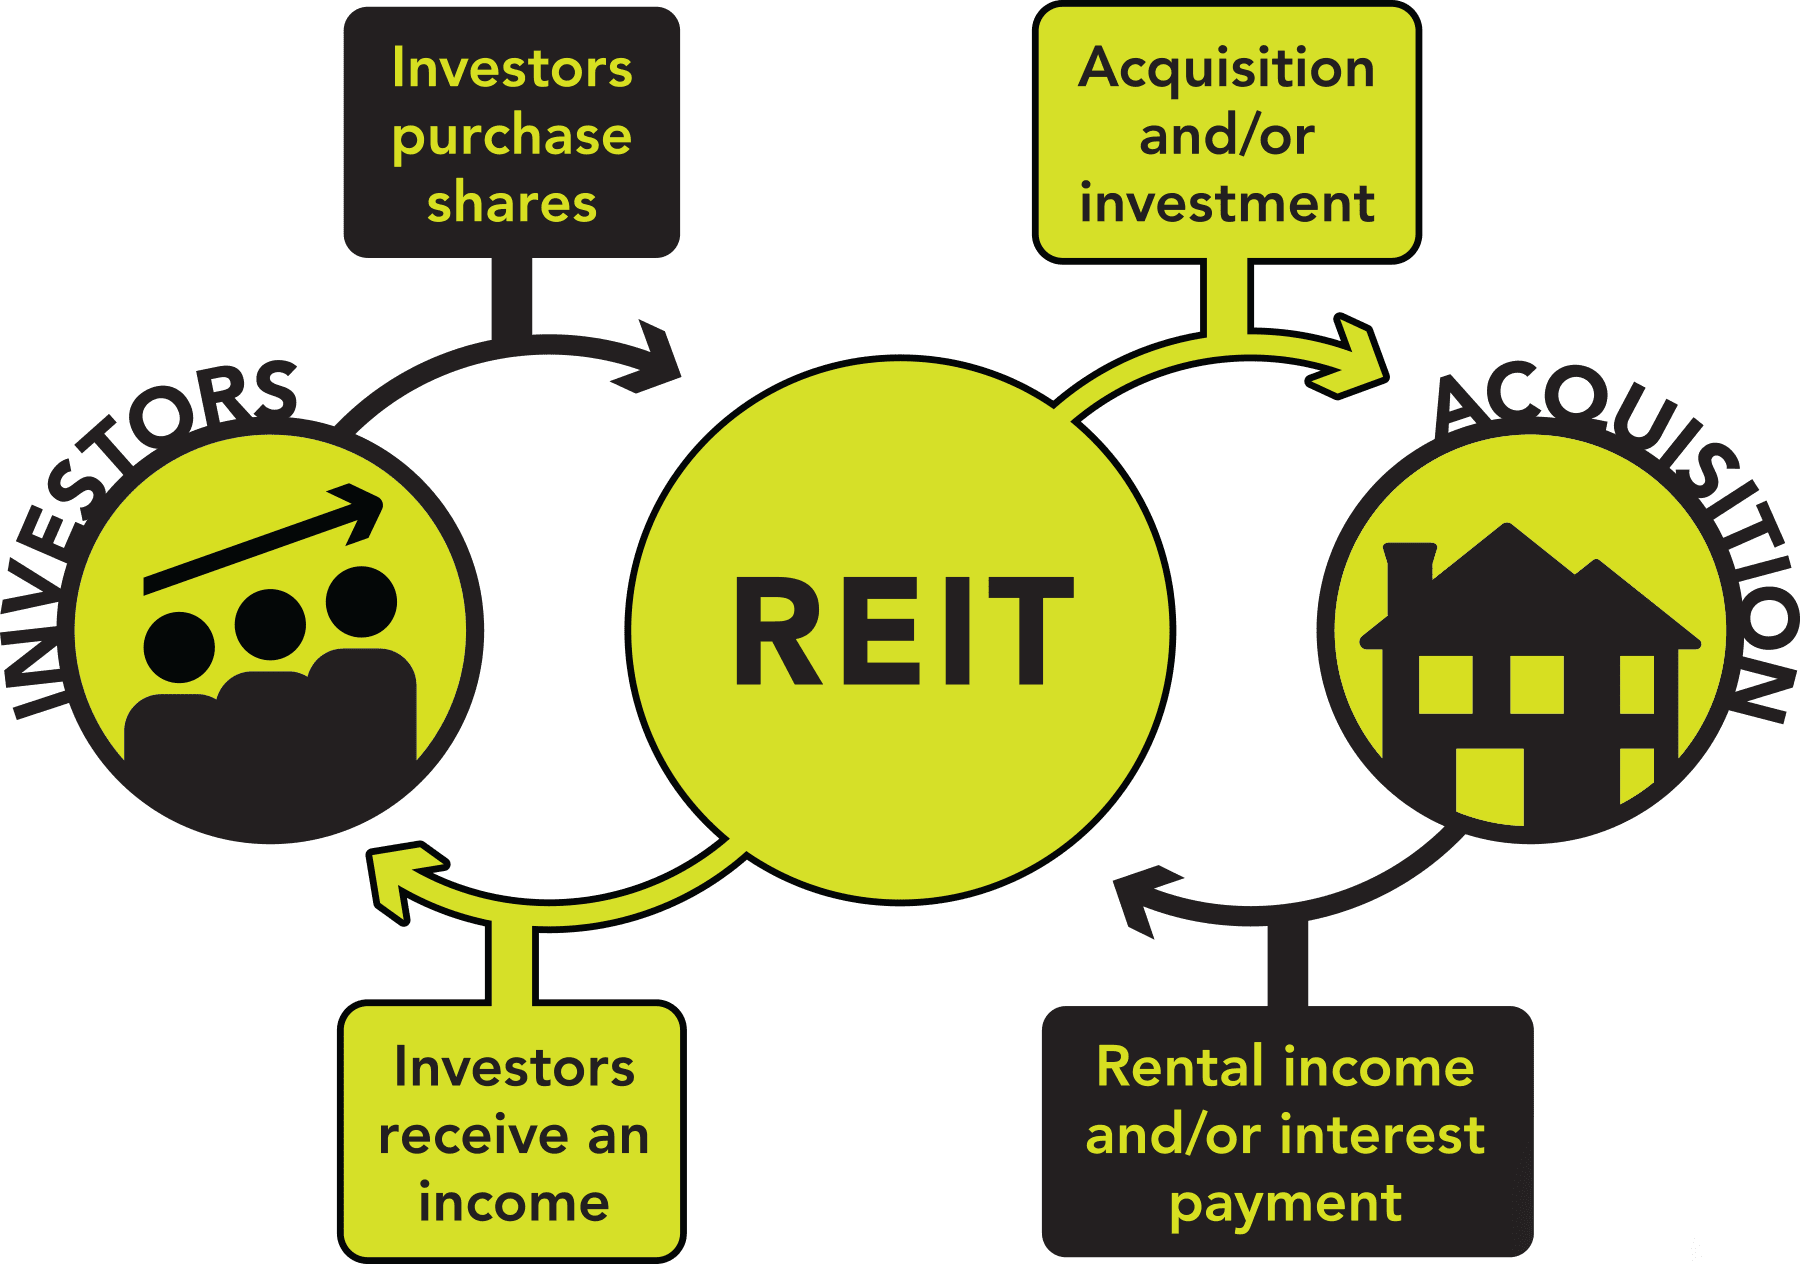 REITs make real estate purchases or finance real estate transactions. A large portion of these proceeds are then passed on to investors.